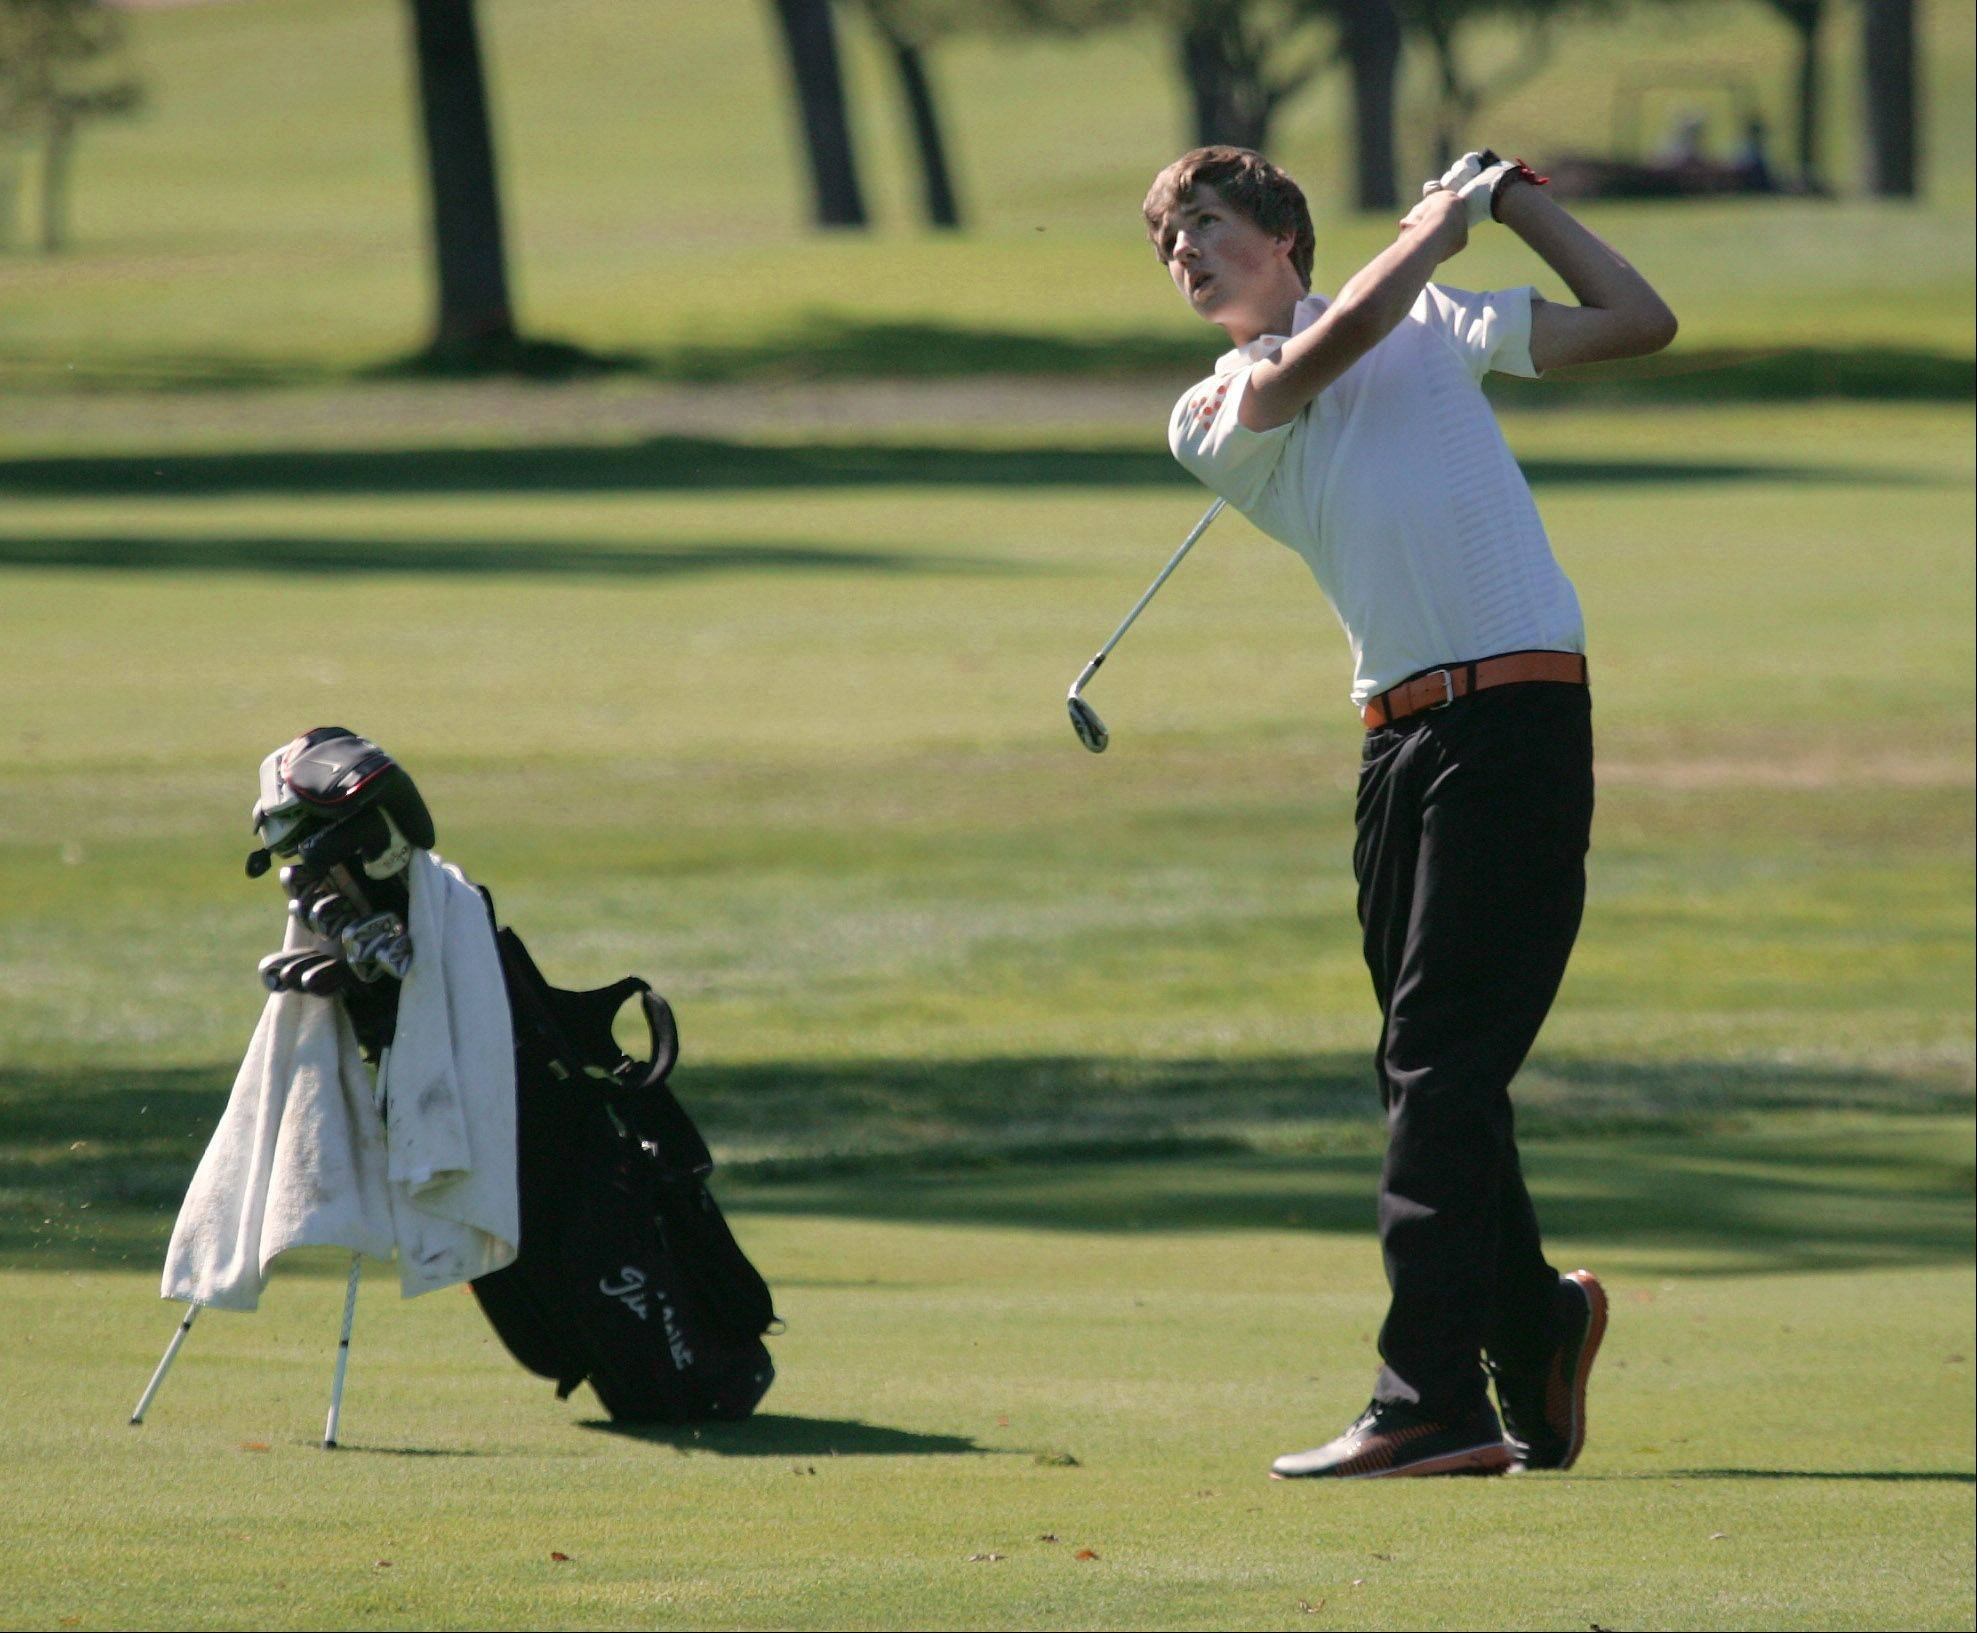 St. Charles East's Max Kelly chips onto the green at No. 1 during invitational play at Biltmore Country Club on Monday.